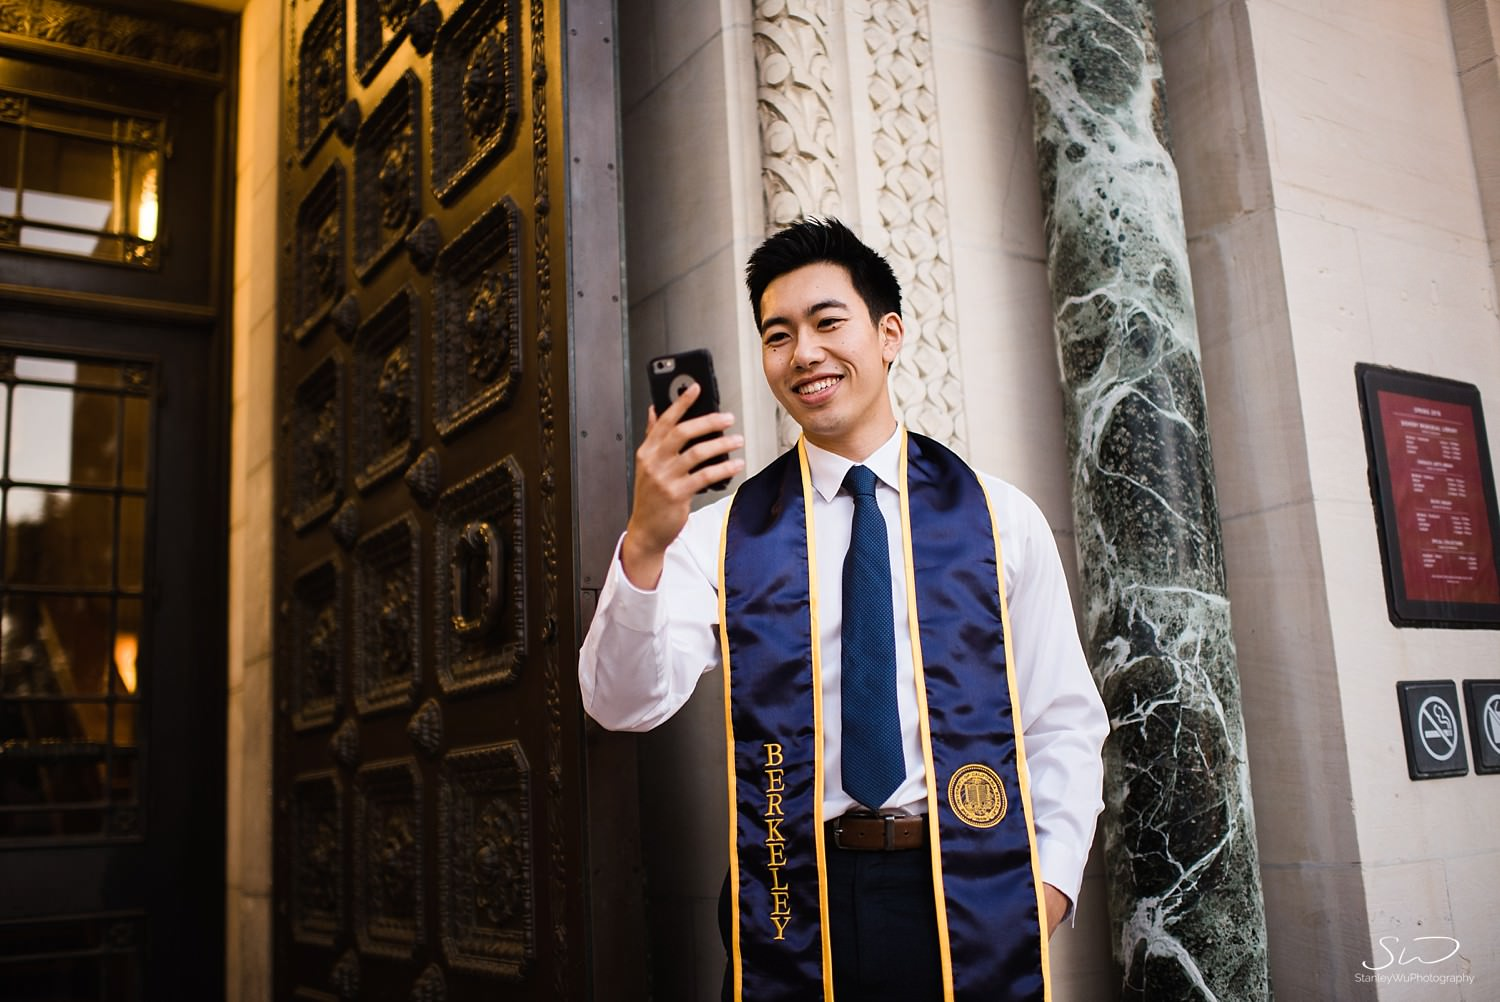 UC Berkeley senior Facetiming in front of Doheny Library | Los Angeles Graduation and Senior Portrait Photographer